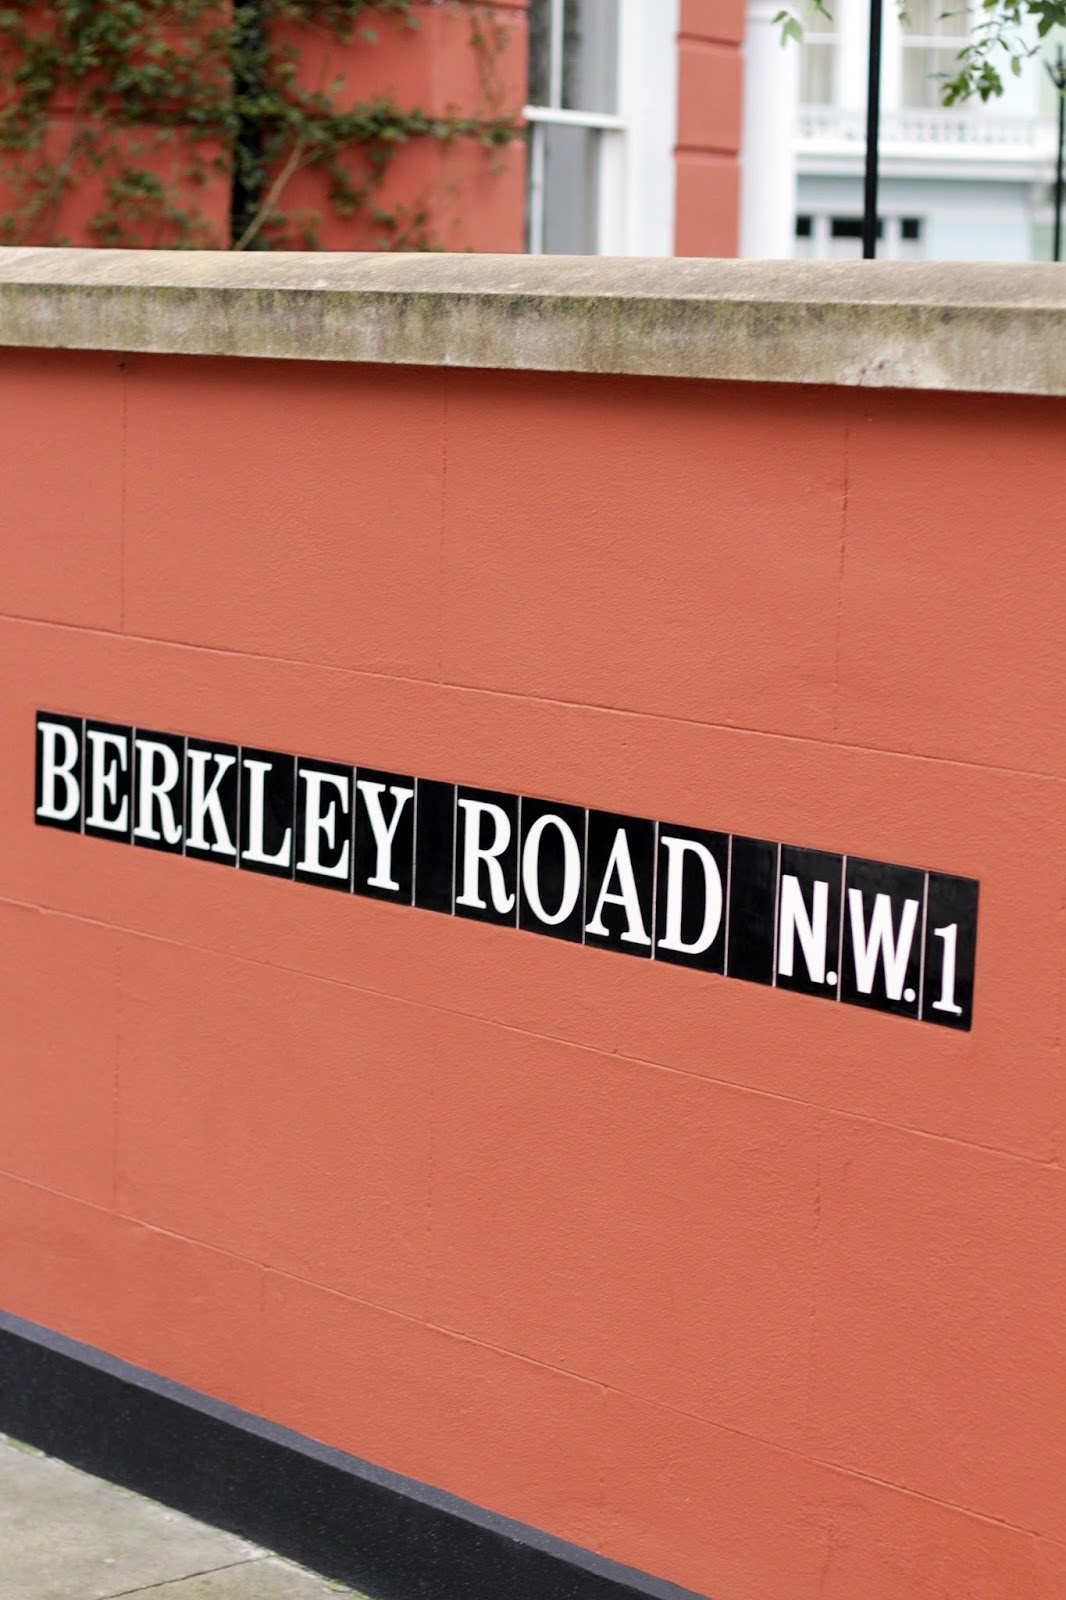 berkley road london